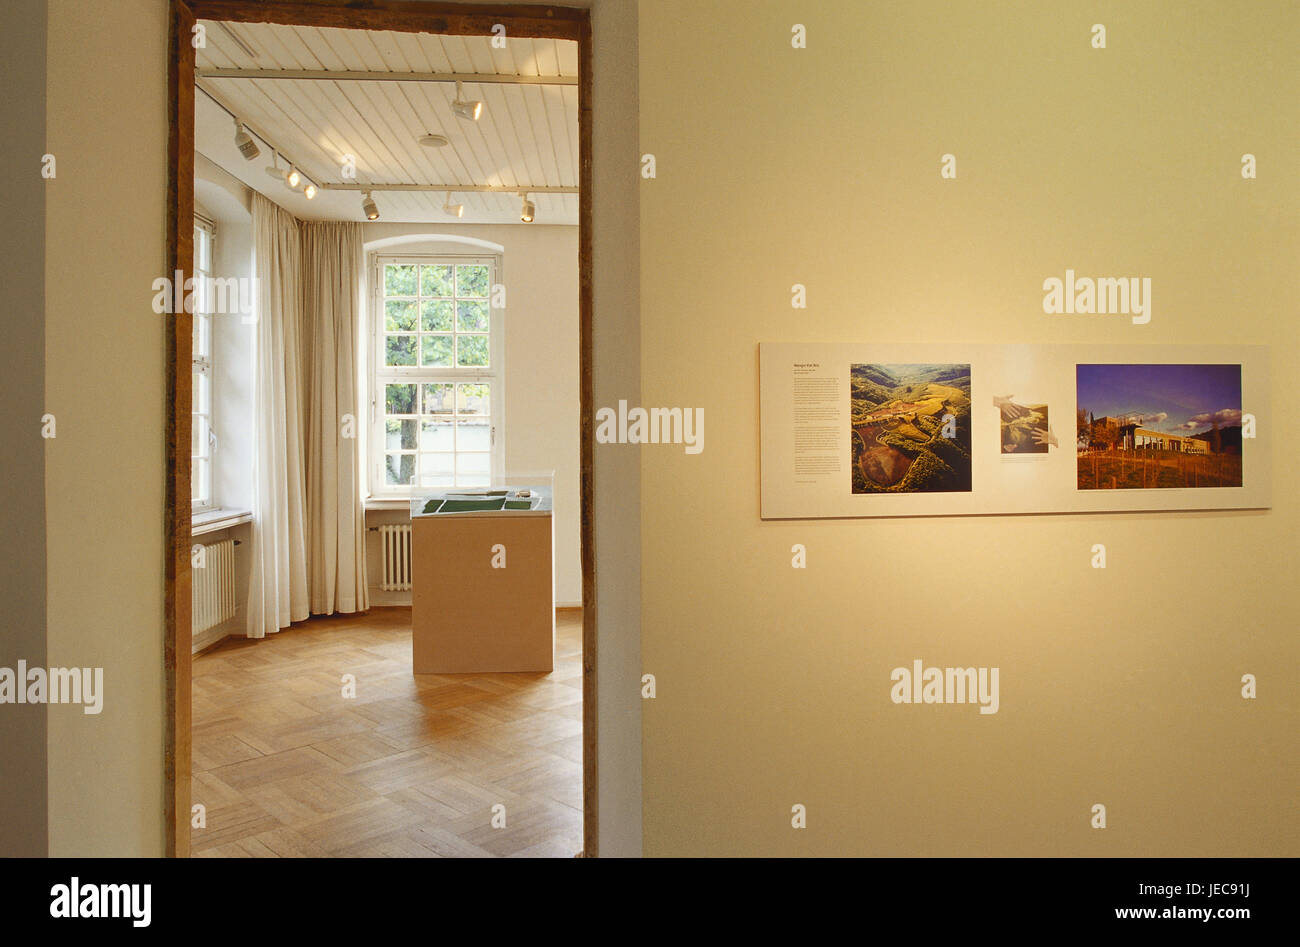 Germany, North Rhine-Westphalia, Bielefeld, museum Waldhof, exhibit, Teutoburger wood, place of interest, building, - Stock Image